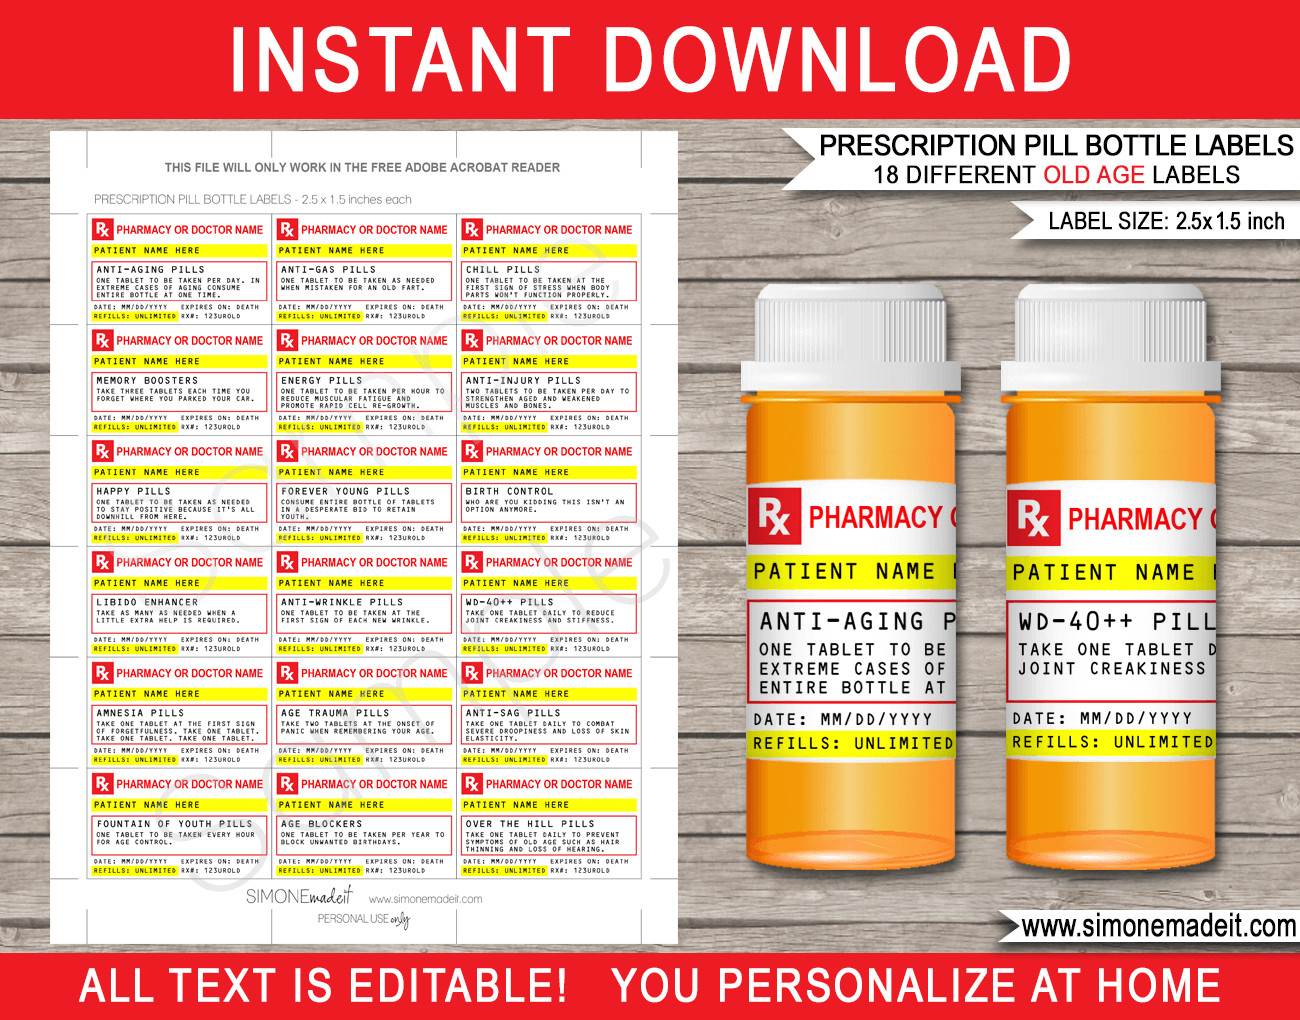 Prescription Bottle Label Template Old Age Prescription Pill Bottle Labels Gag Gift